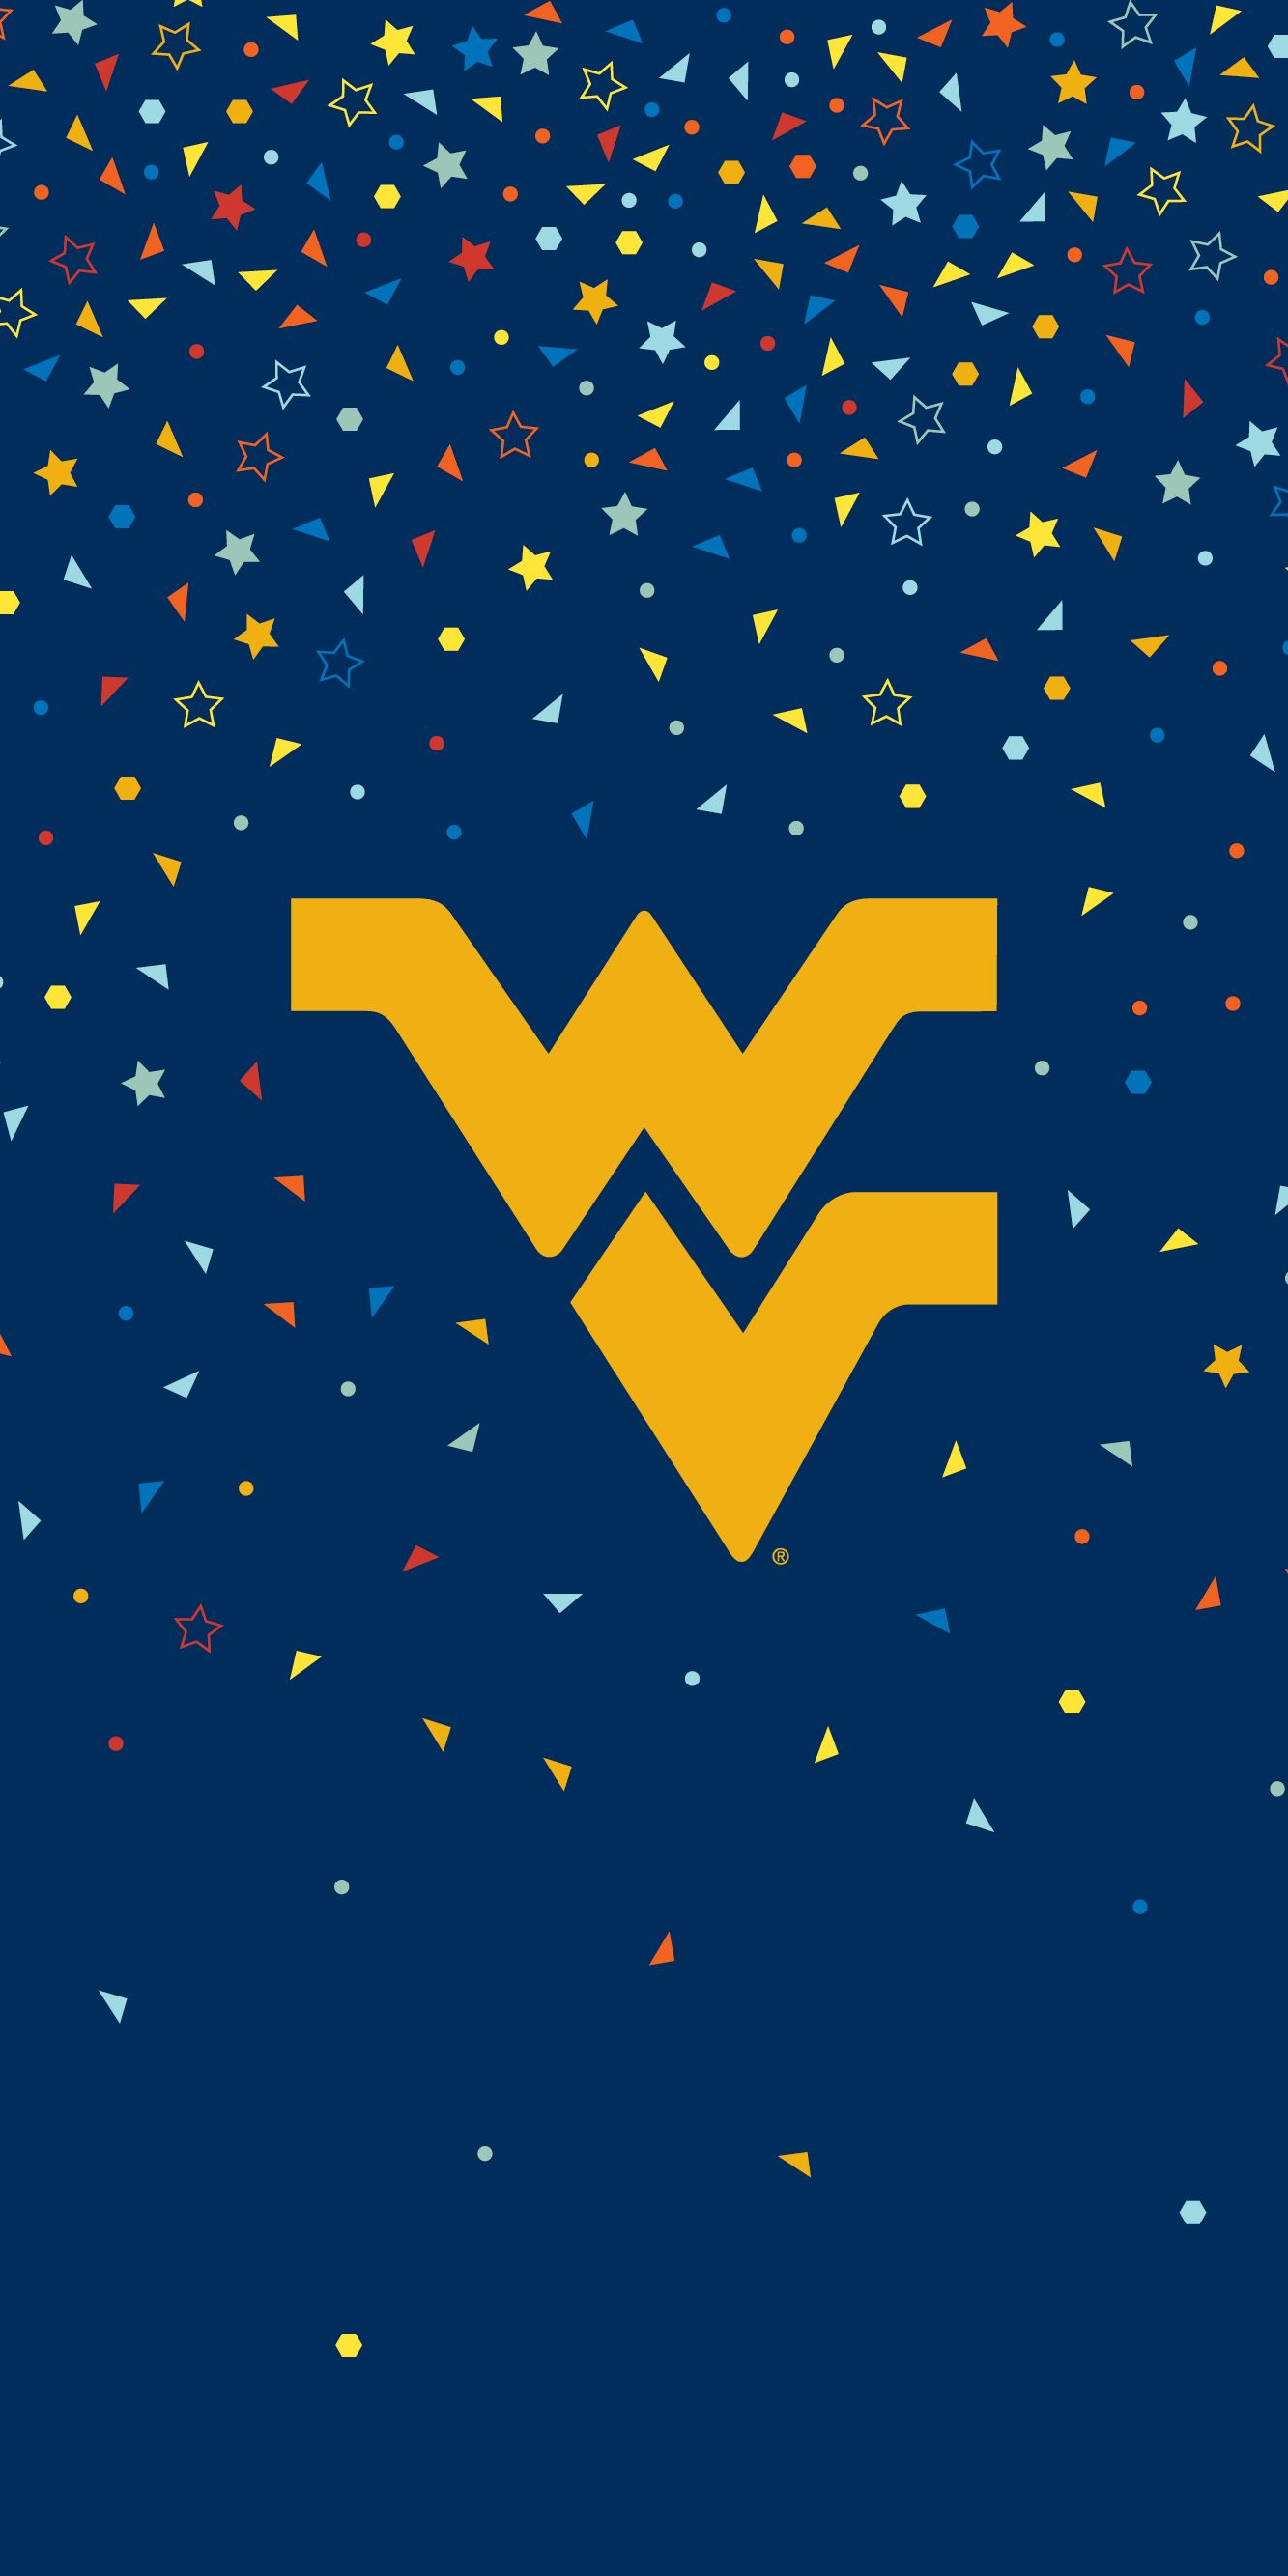 Flying WV confetti mobile wallpaper